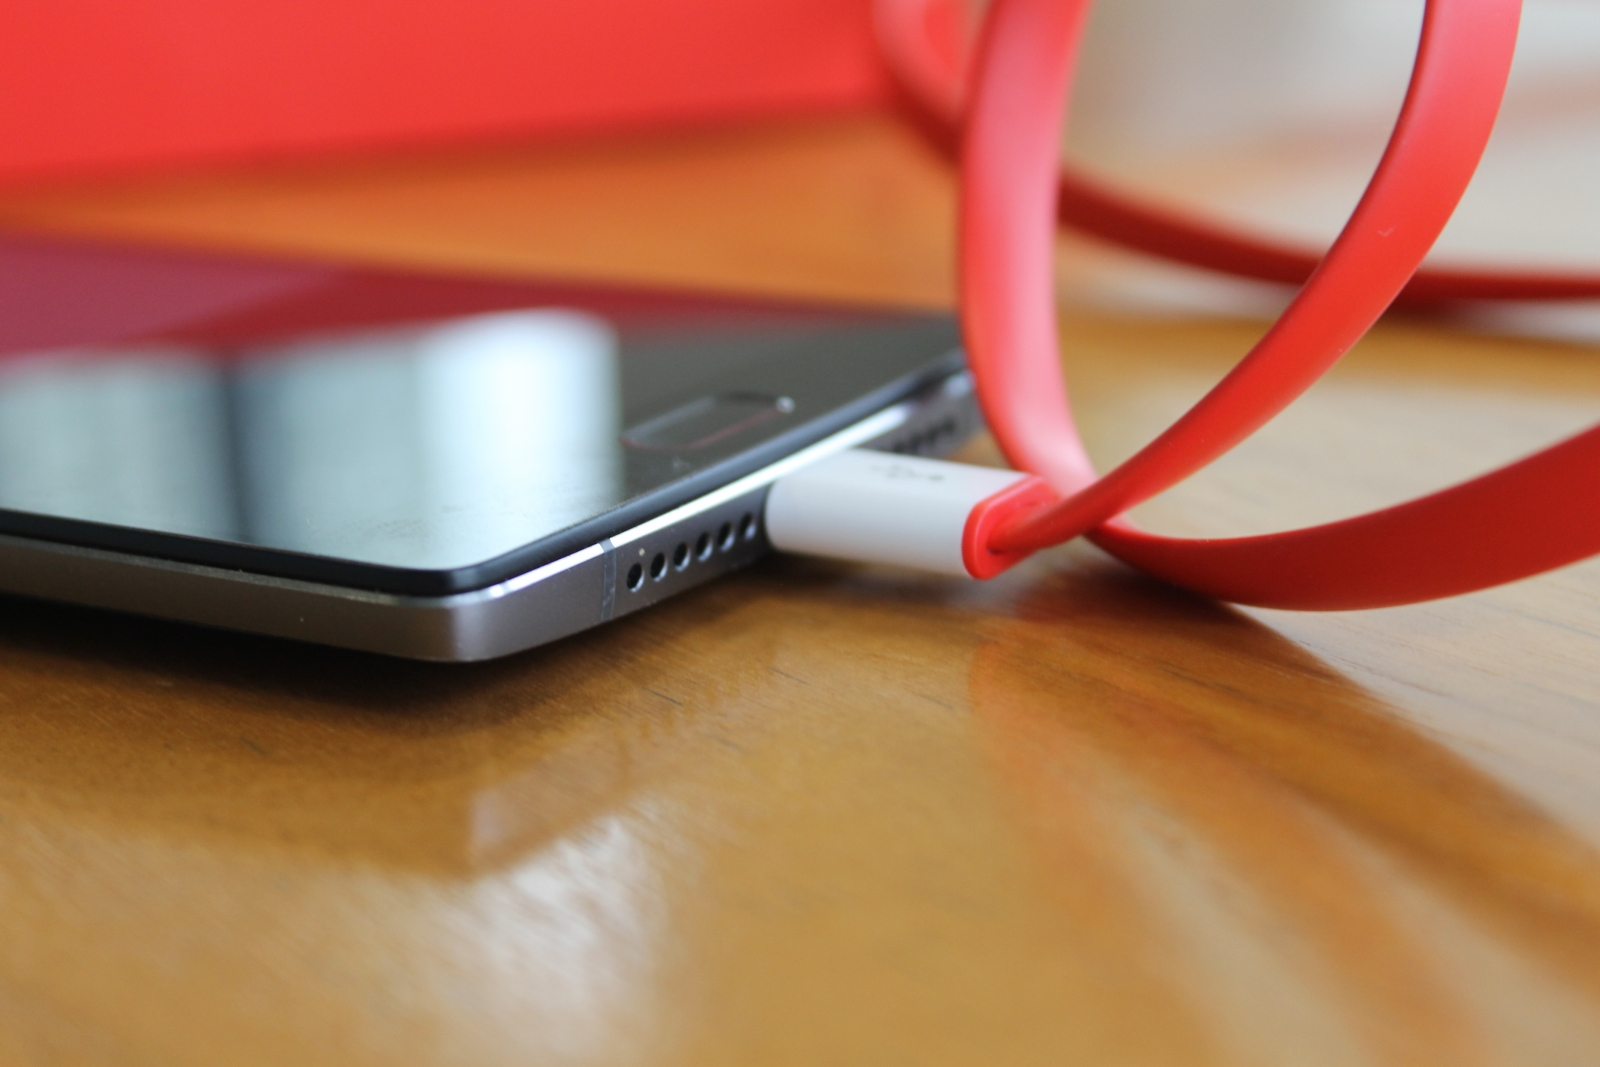 OnePlus 2 Review - USB-C